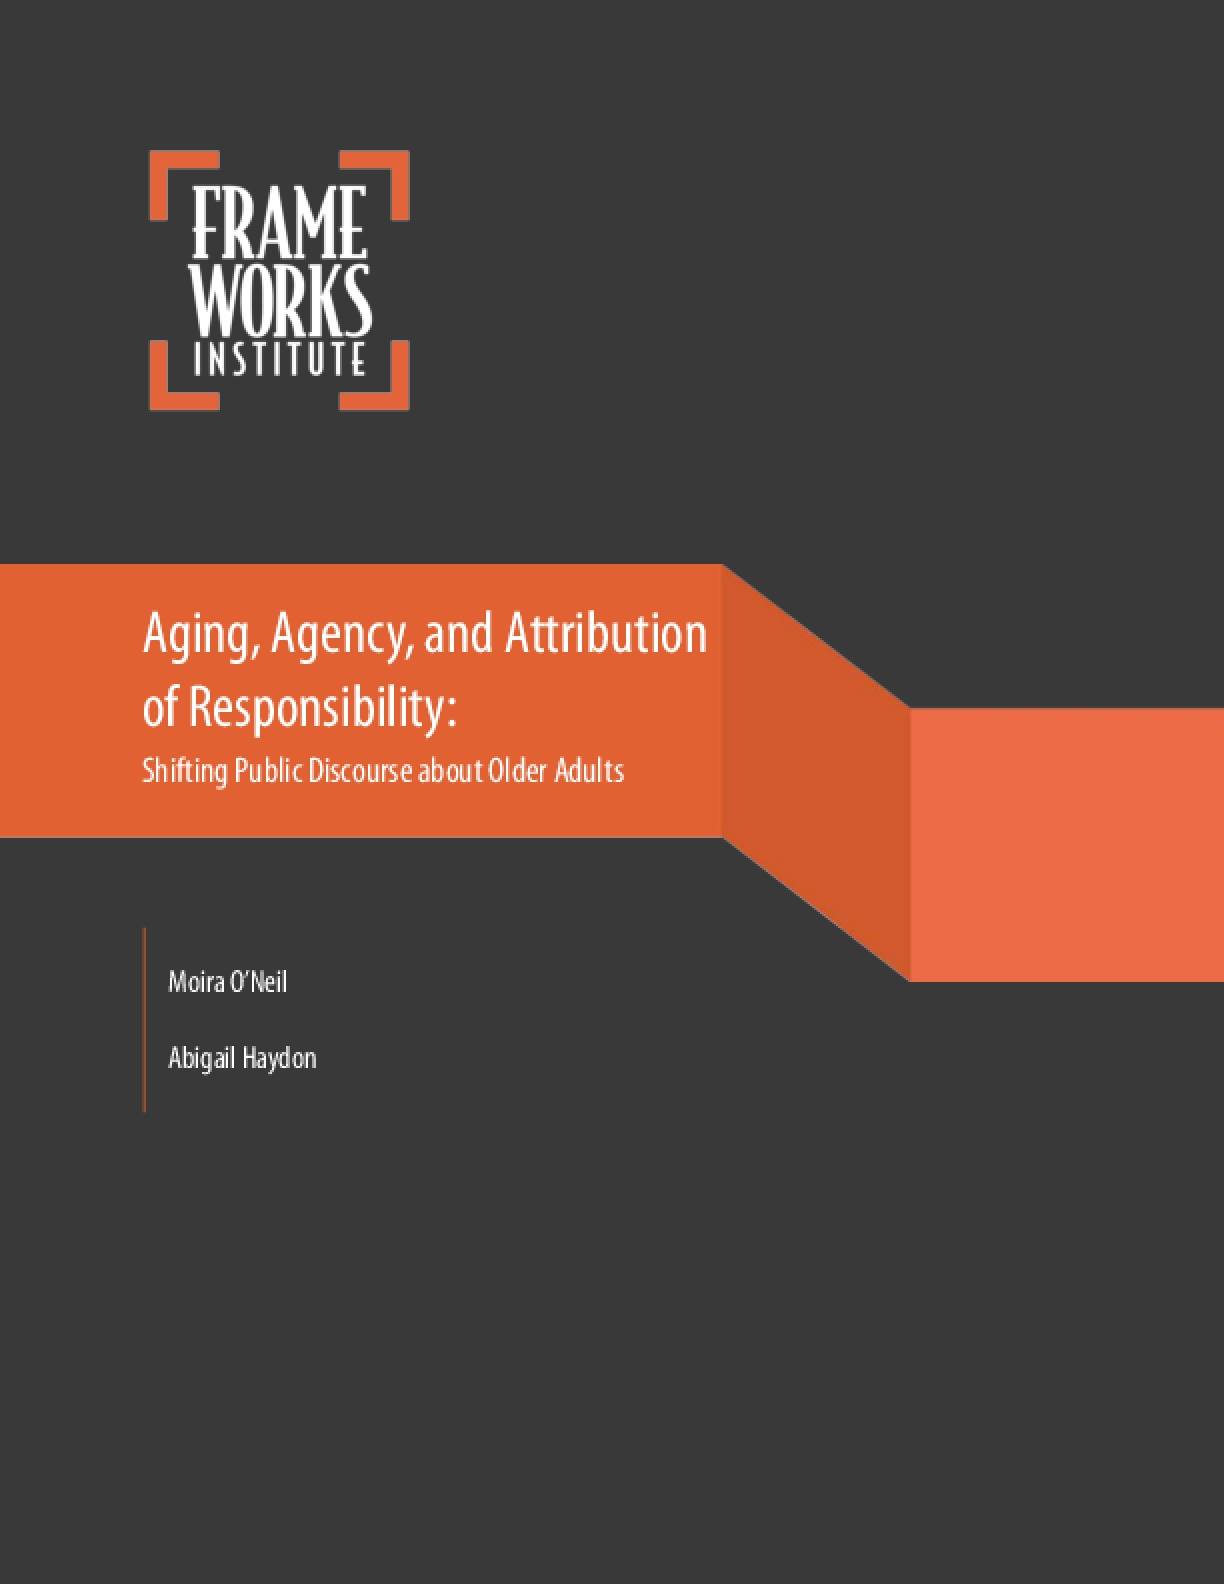 Aging, Agency and the Attribution of Responsibility: Shifting Public Discourse About Older Adults